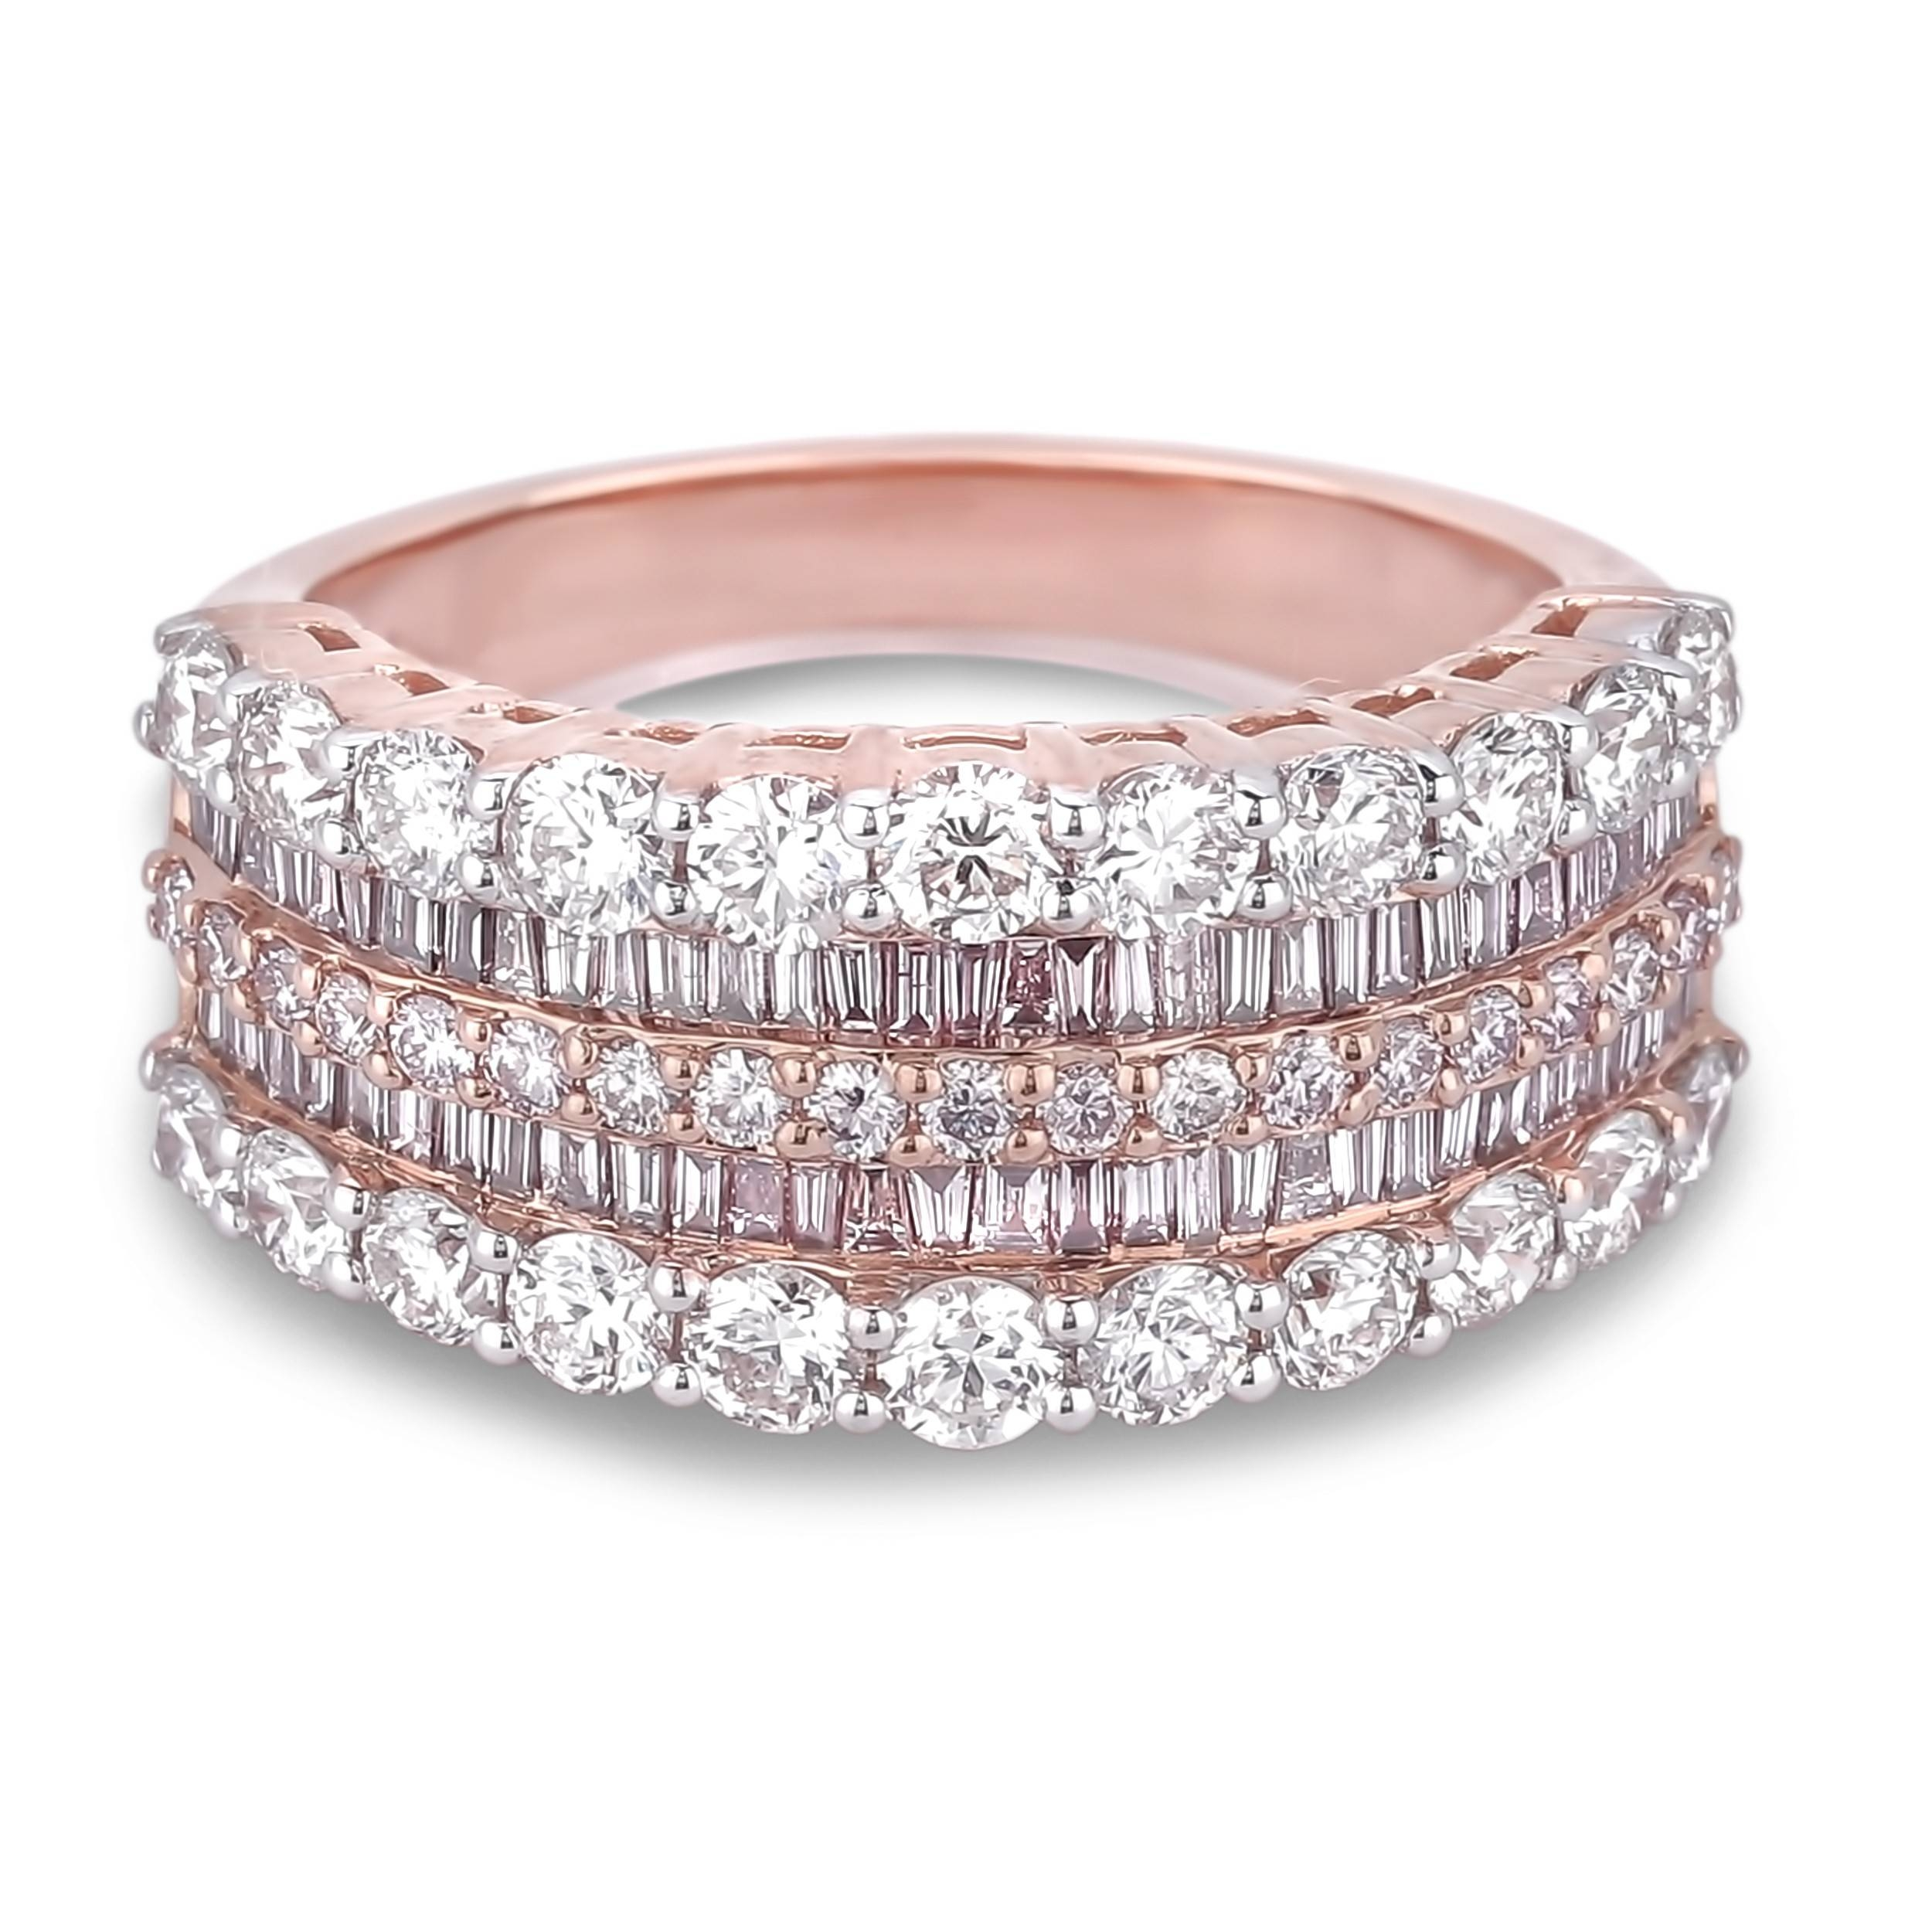 Lugaro | Argyle Pink Diamond Anniversary Ring Intended For 2018 Eternity Anniversary Rings (View 4 of 25)